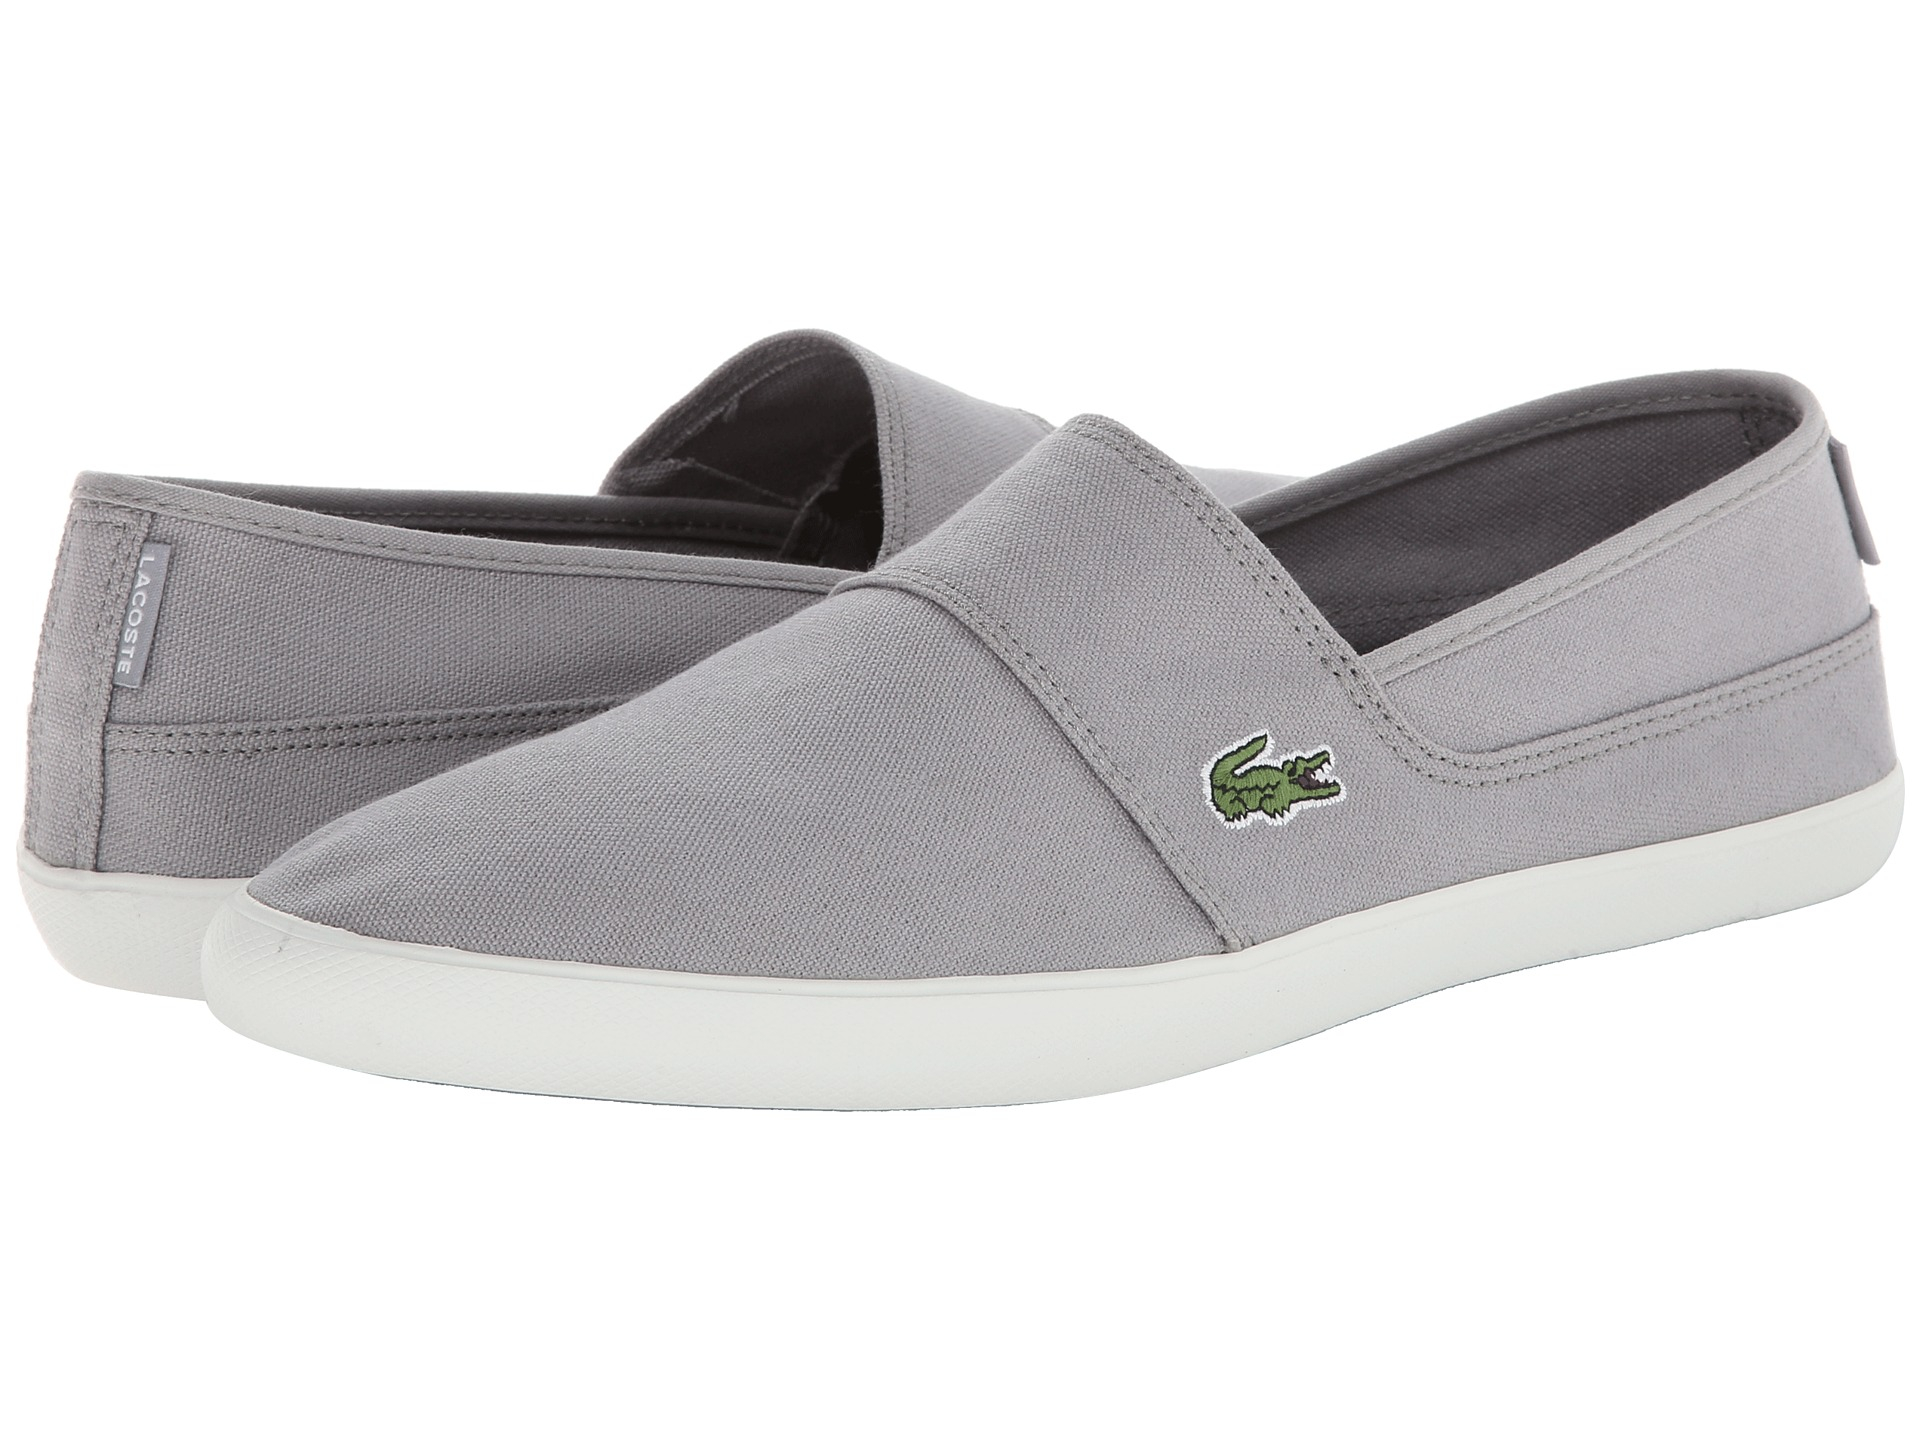 4a48d5bb8 Lyst - Lacoste Marice Lcr in Gray for Men